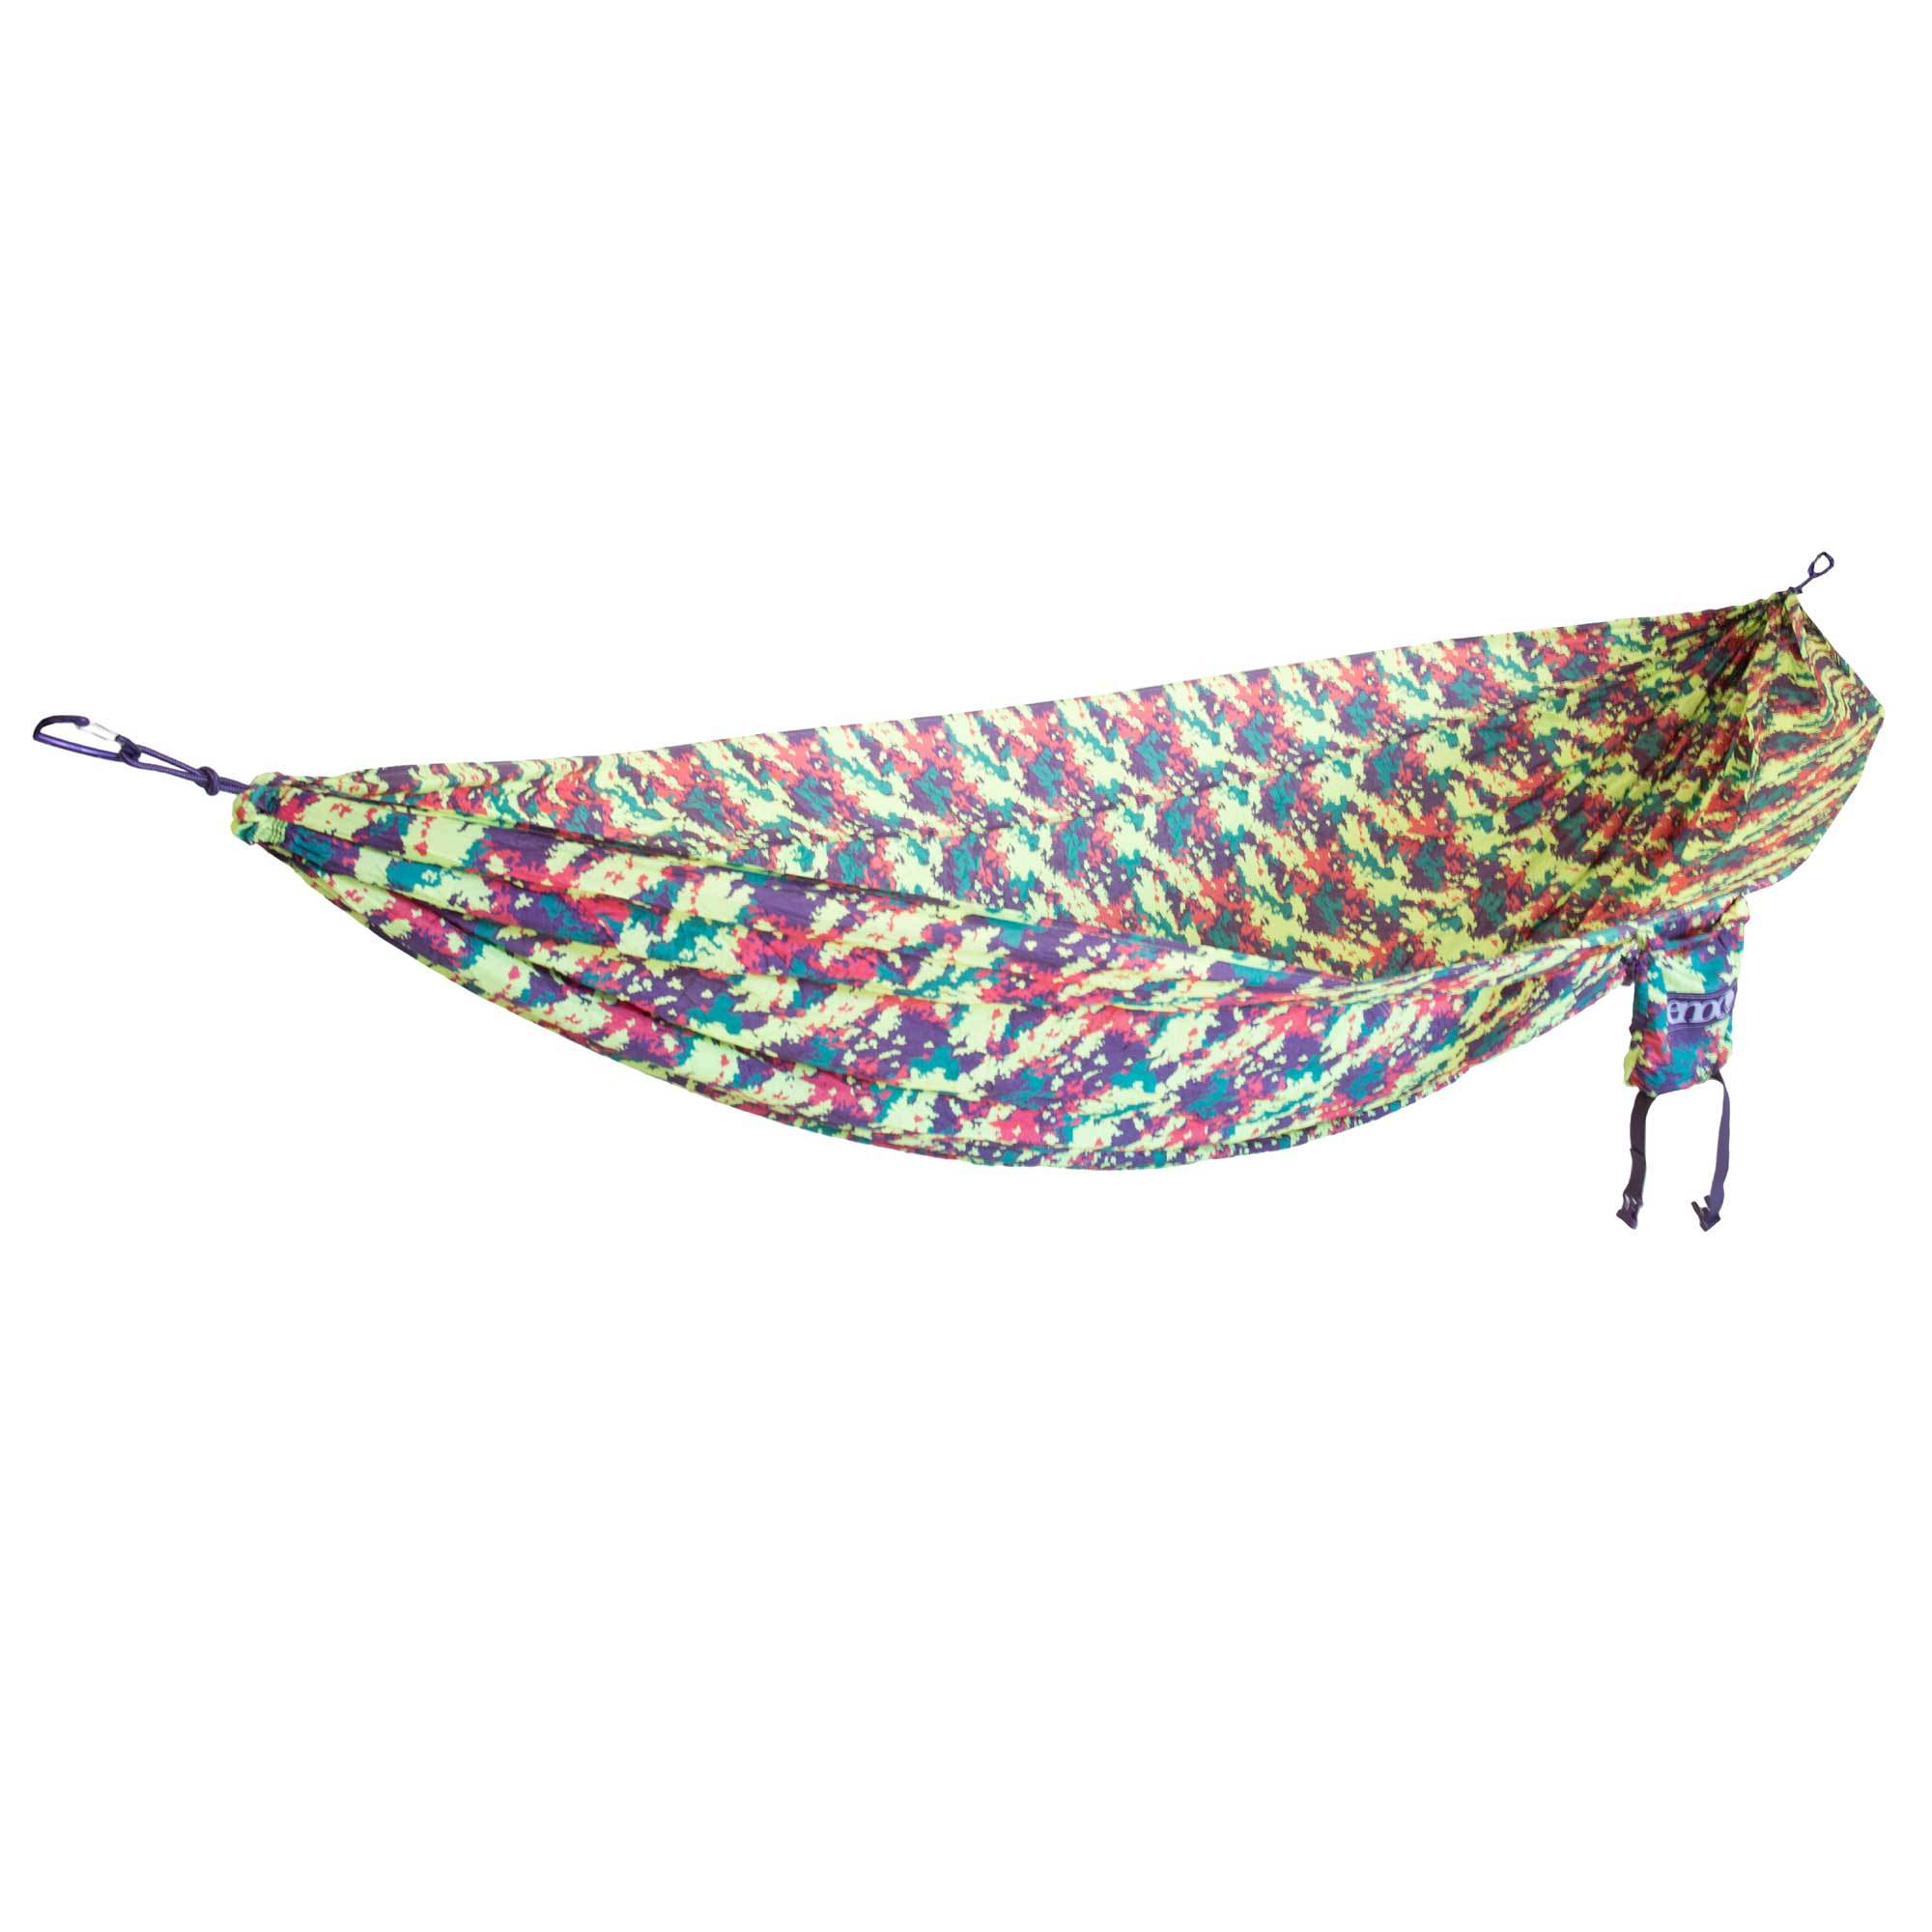 Medium image of eno camonest xl hammock   retro camo